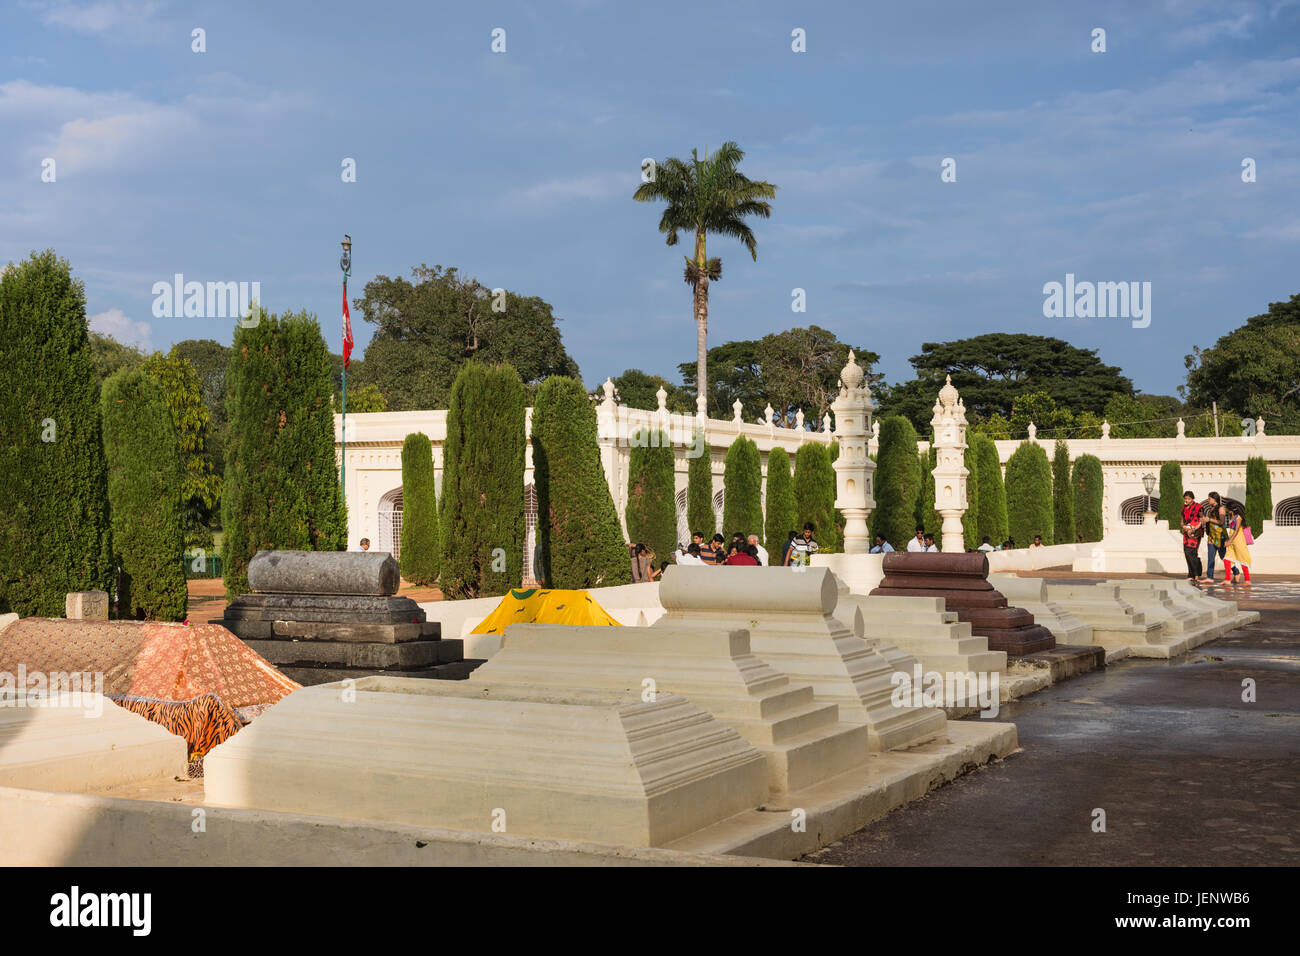 Mysore, India - October 26, 2013: Cemetery with classic Muslim tombs of Generals and Administration top dogs at - Stock Image